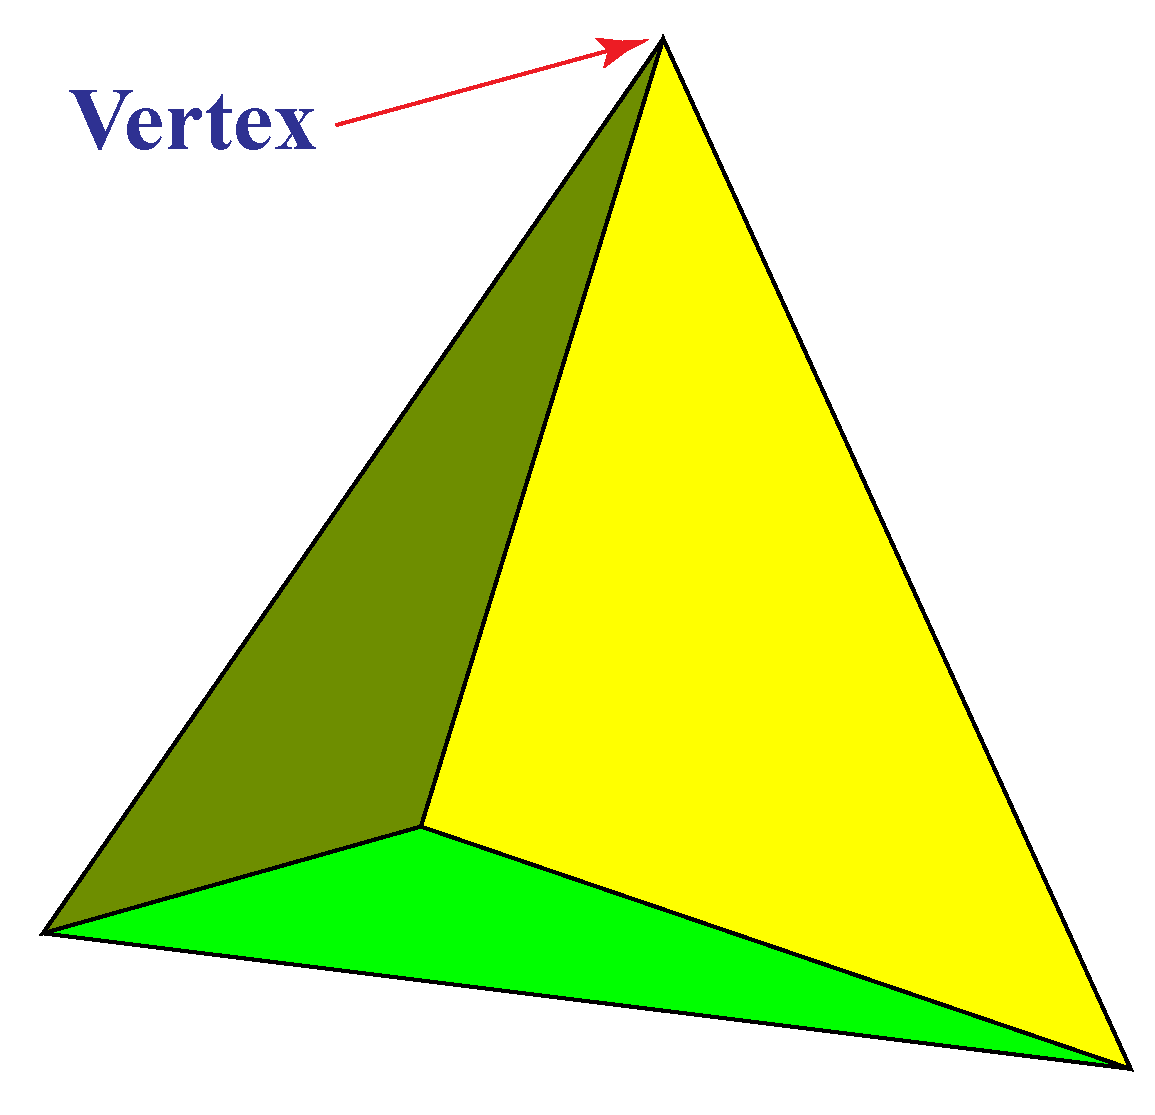 Tetrahedron properties: It consists of 4 faces, 4 corners, and 6 edges.